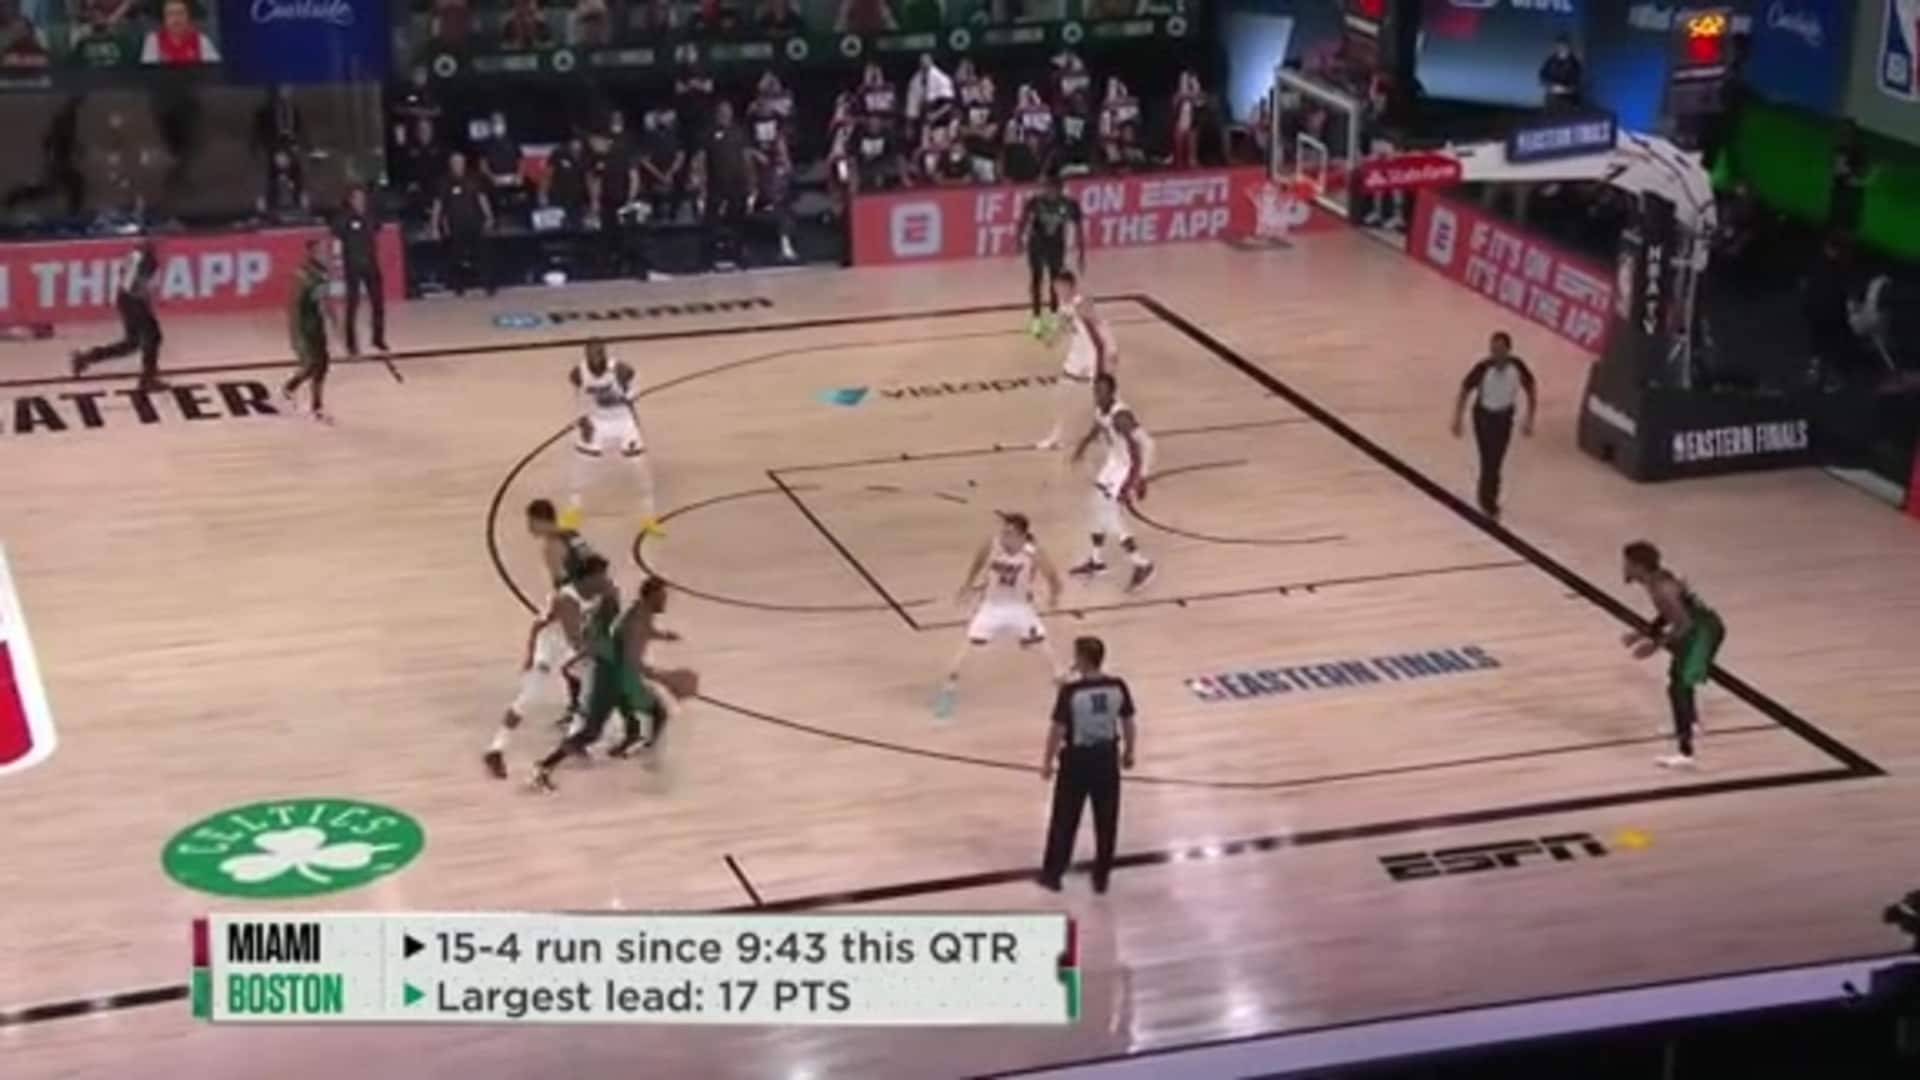 Celtics Game 2: Zone Defense 2